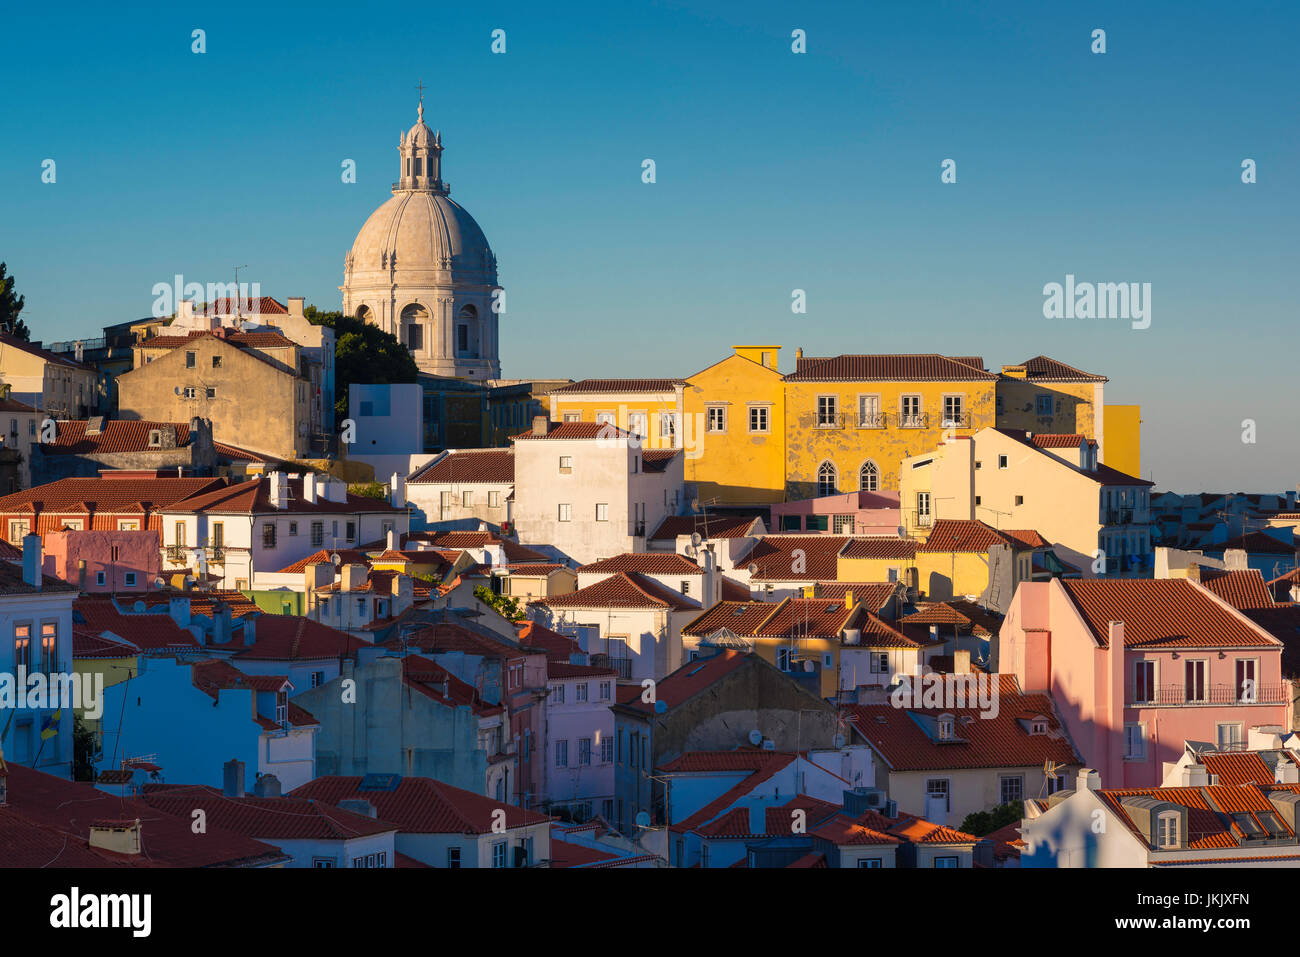 Lisbon cityscape, view of the Alfama skyline at sunset with the dome of the National Pantheon rising above the rooftops, - Stock Image